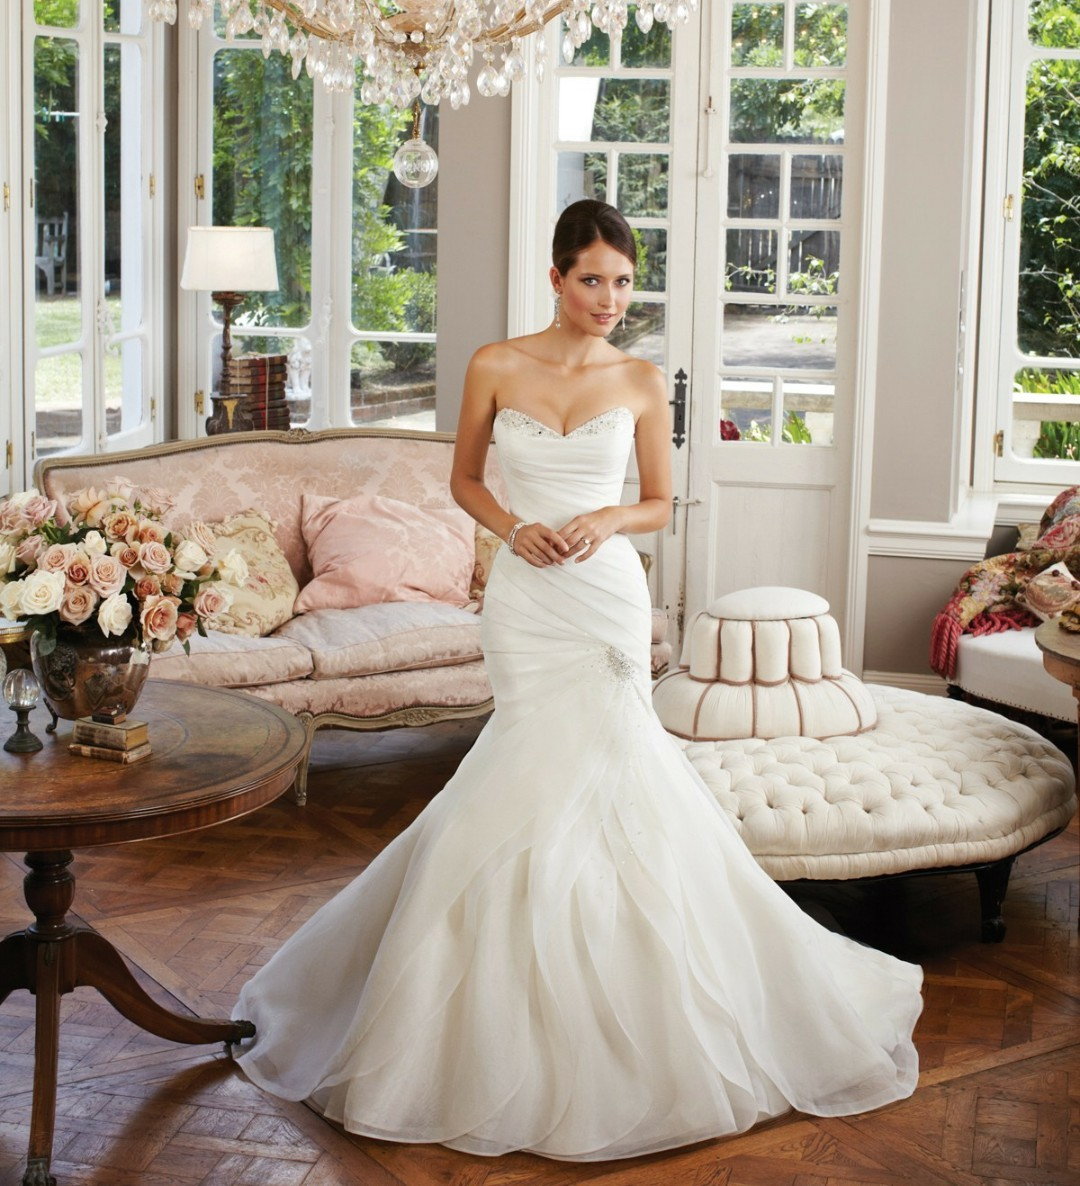 Cost Of Sophia Tolli Wedding Gowns: Sophia Tolli Cornflower Y21377 New Wedding Dress On Sale